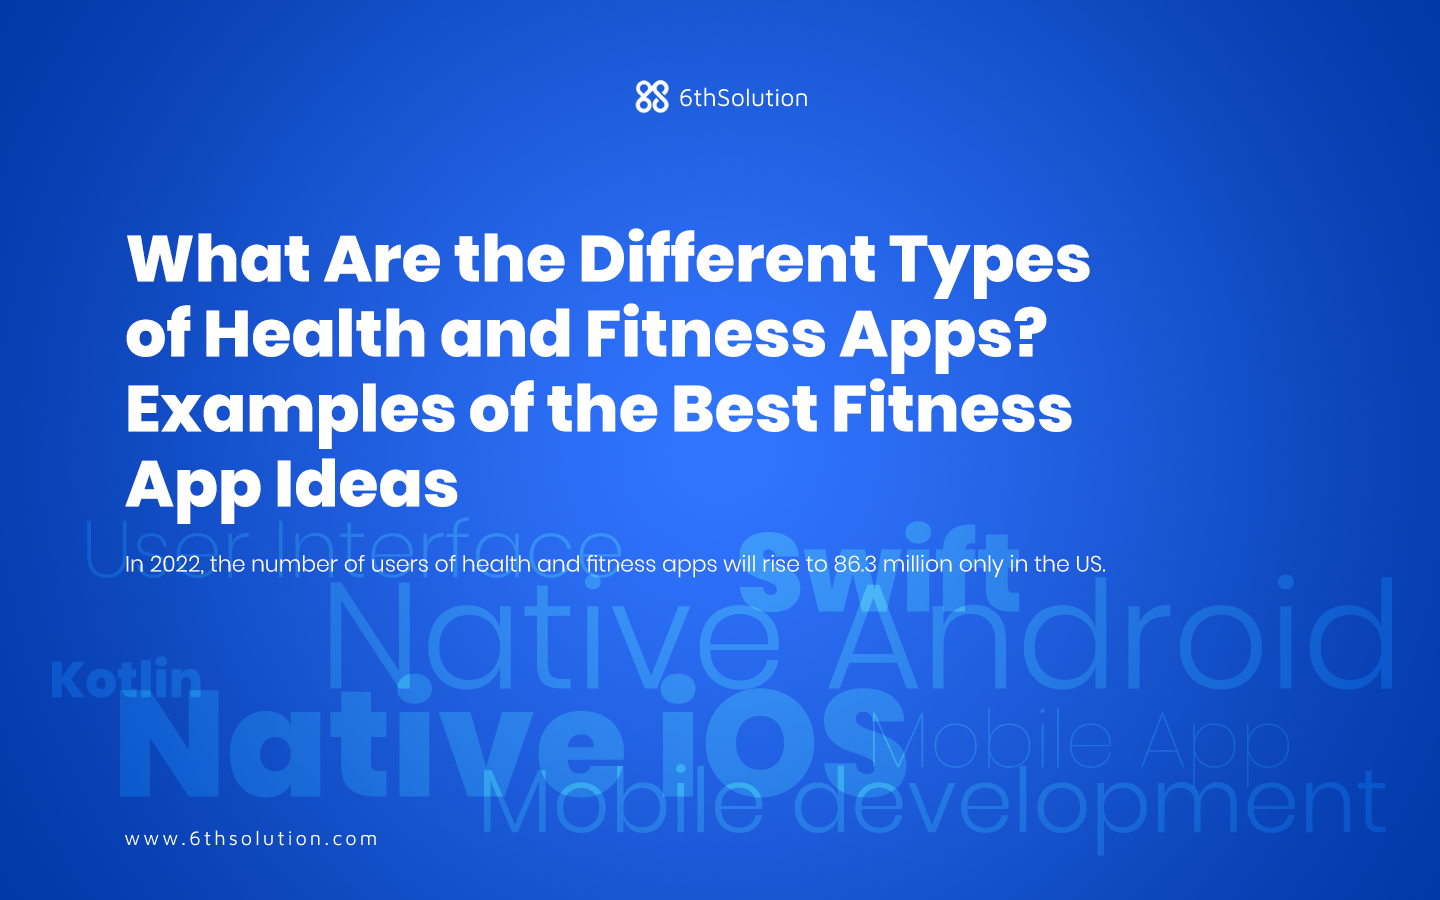 Types of Health and Fitness Apps